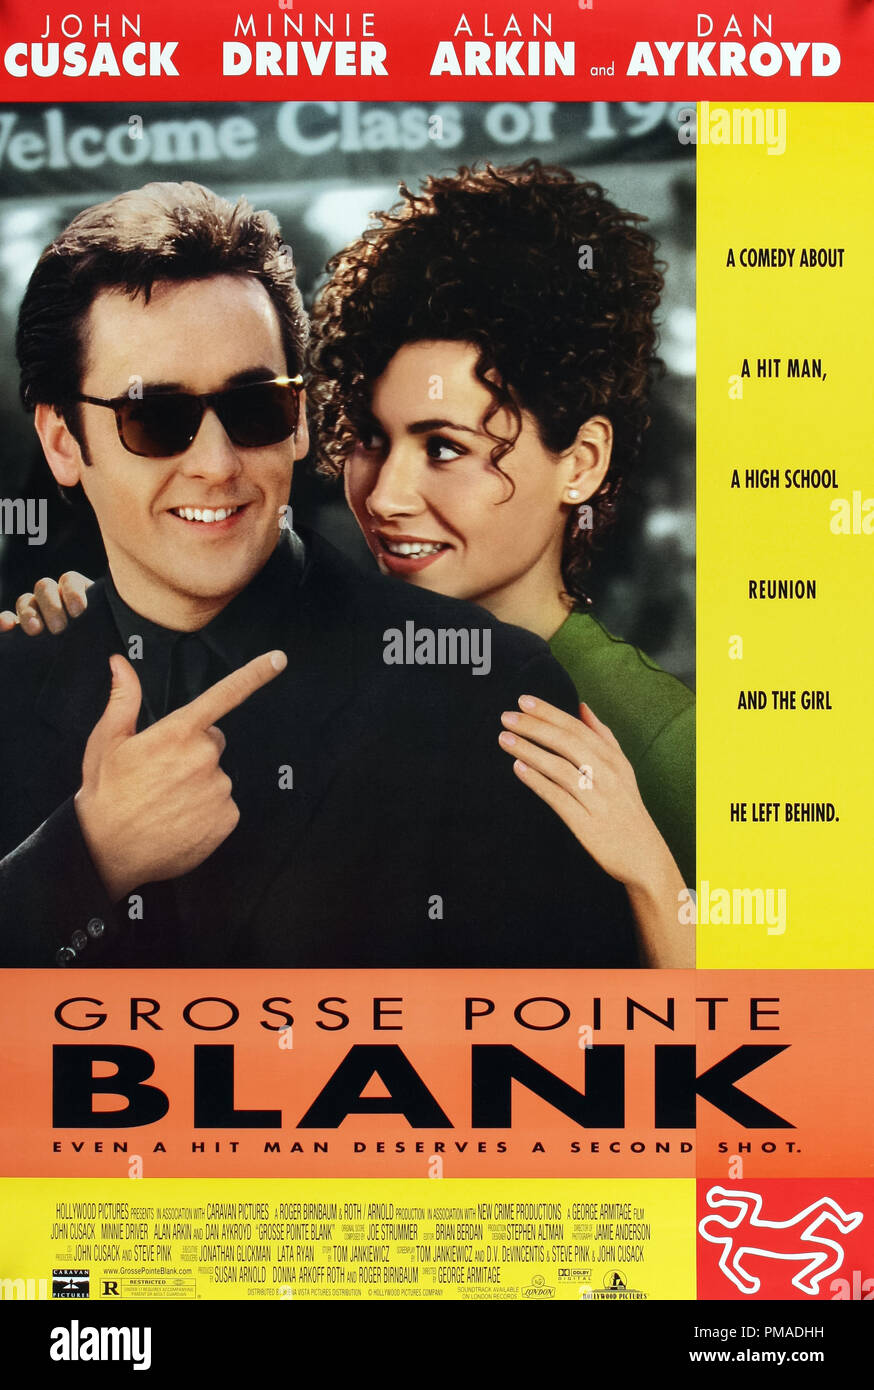 'Grosse Pointe Blank' - US Poster 1997 Buena Vista Films  John Cusack, Minnie Driver  File Reference # 32509_184THA - Stock Image